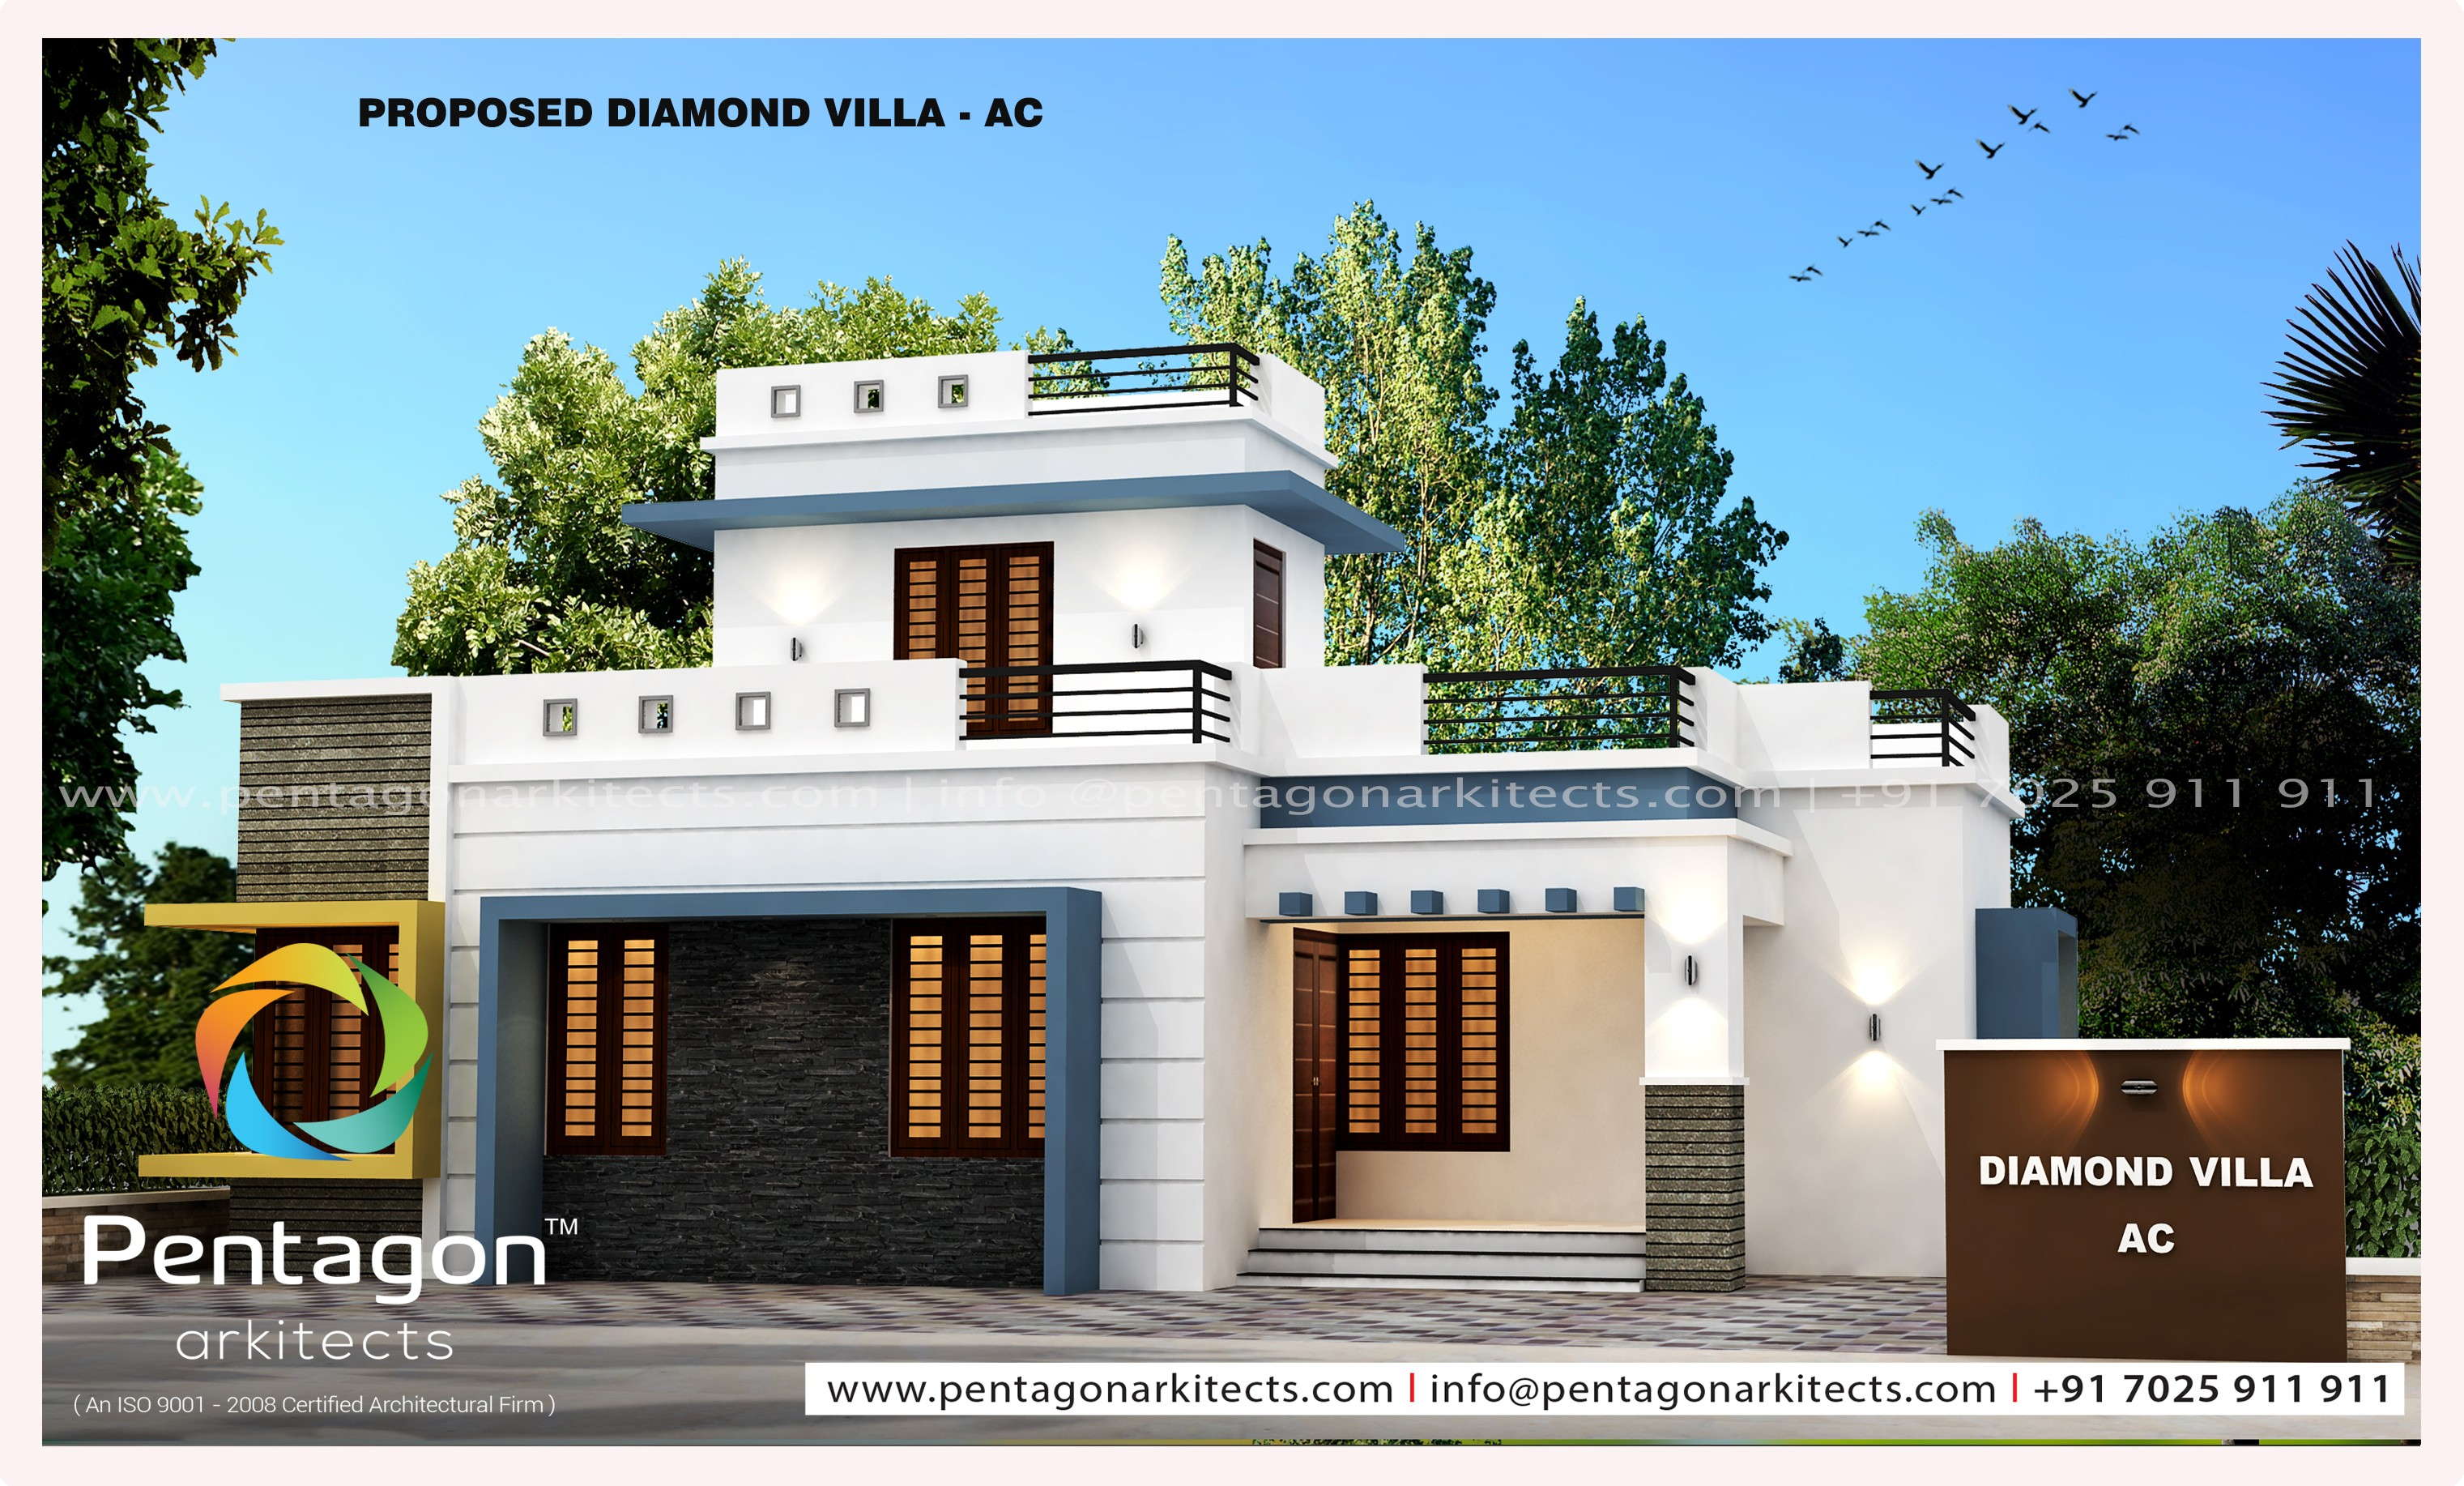 1125 Square Feet 3 Bedroom Contemporary Modern Single Floor Home Design and Plan